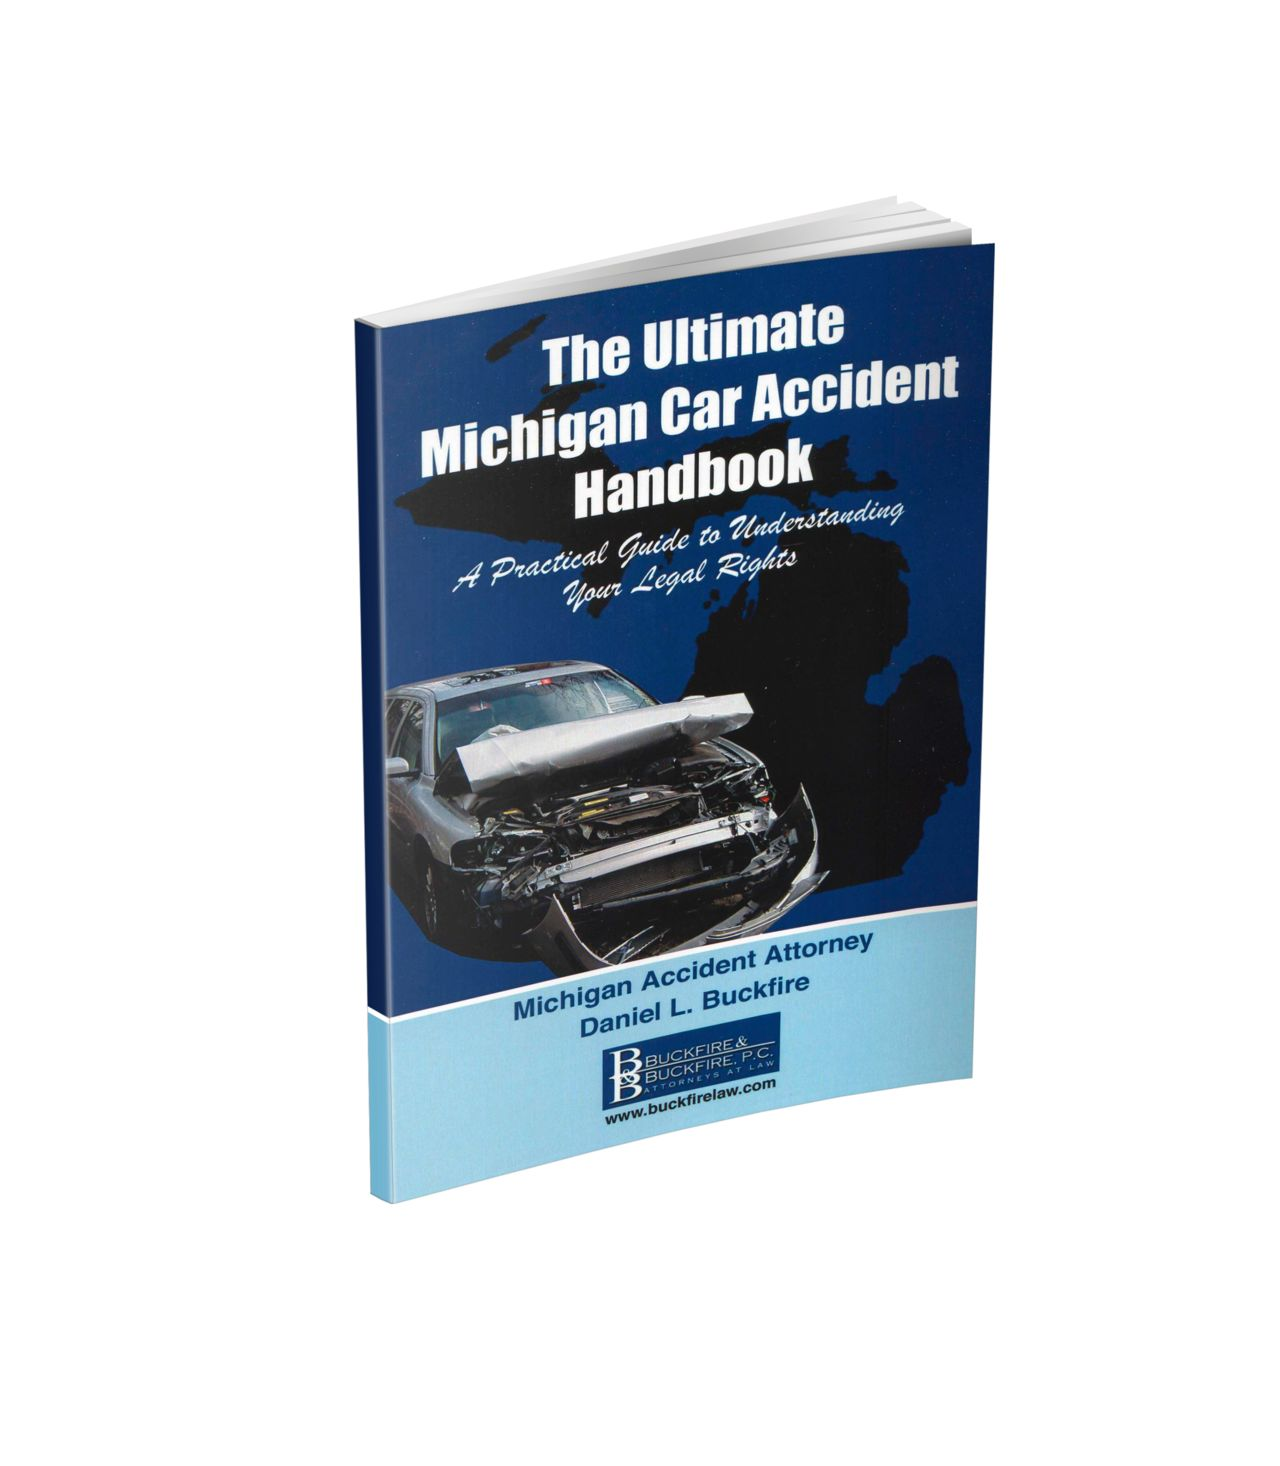 Michigan Auto Accident Handbook